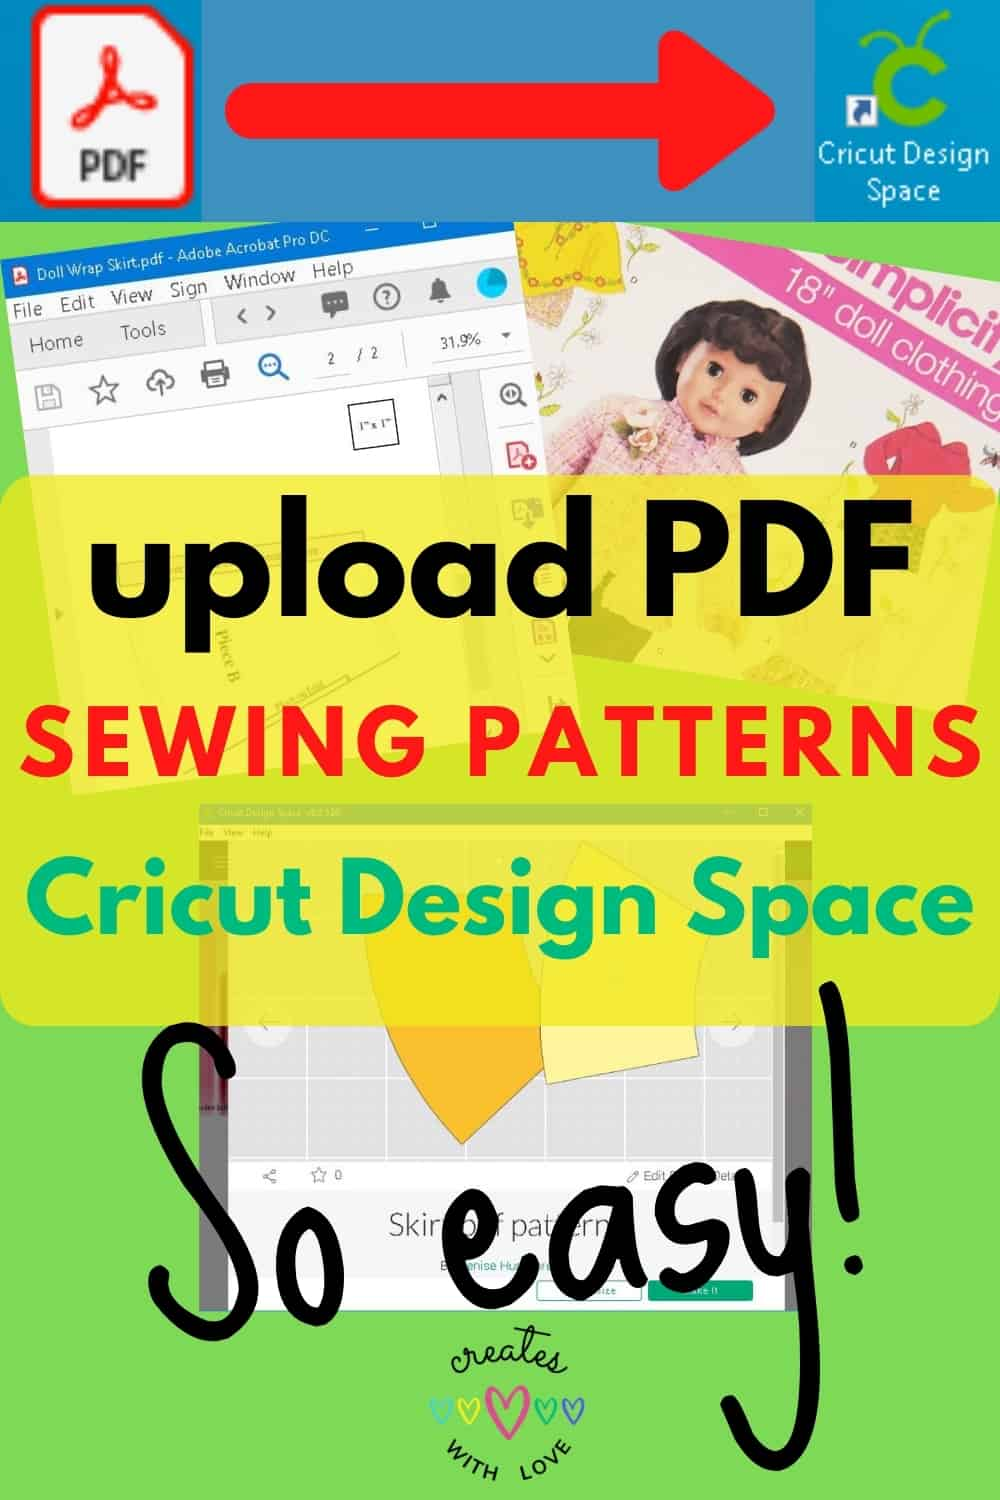 a Pin picture showing how to upload a PDF Sewing Pattern into Cricut Design Space